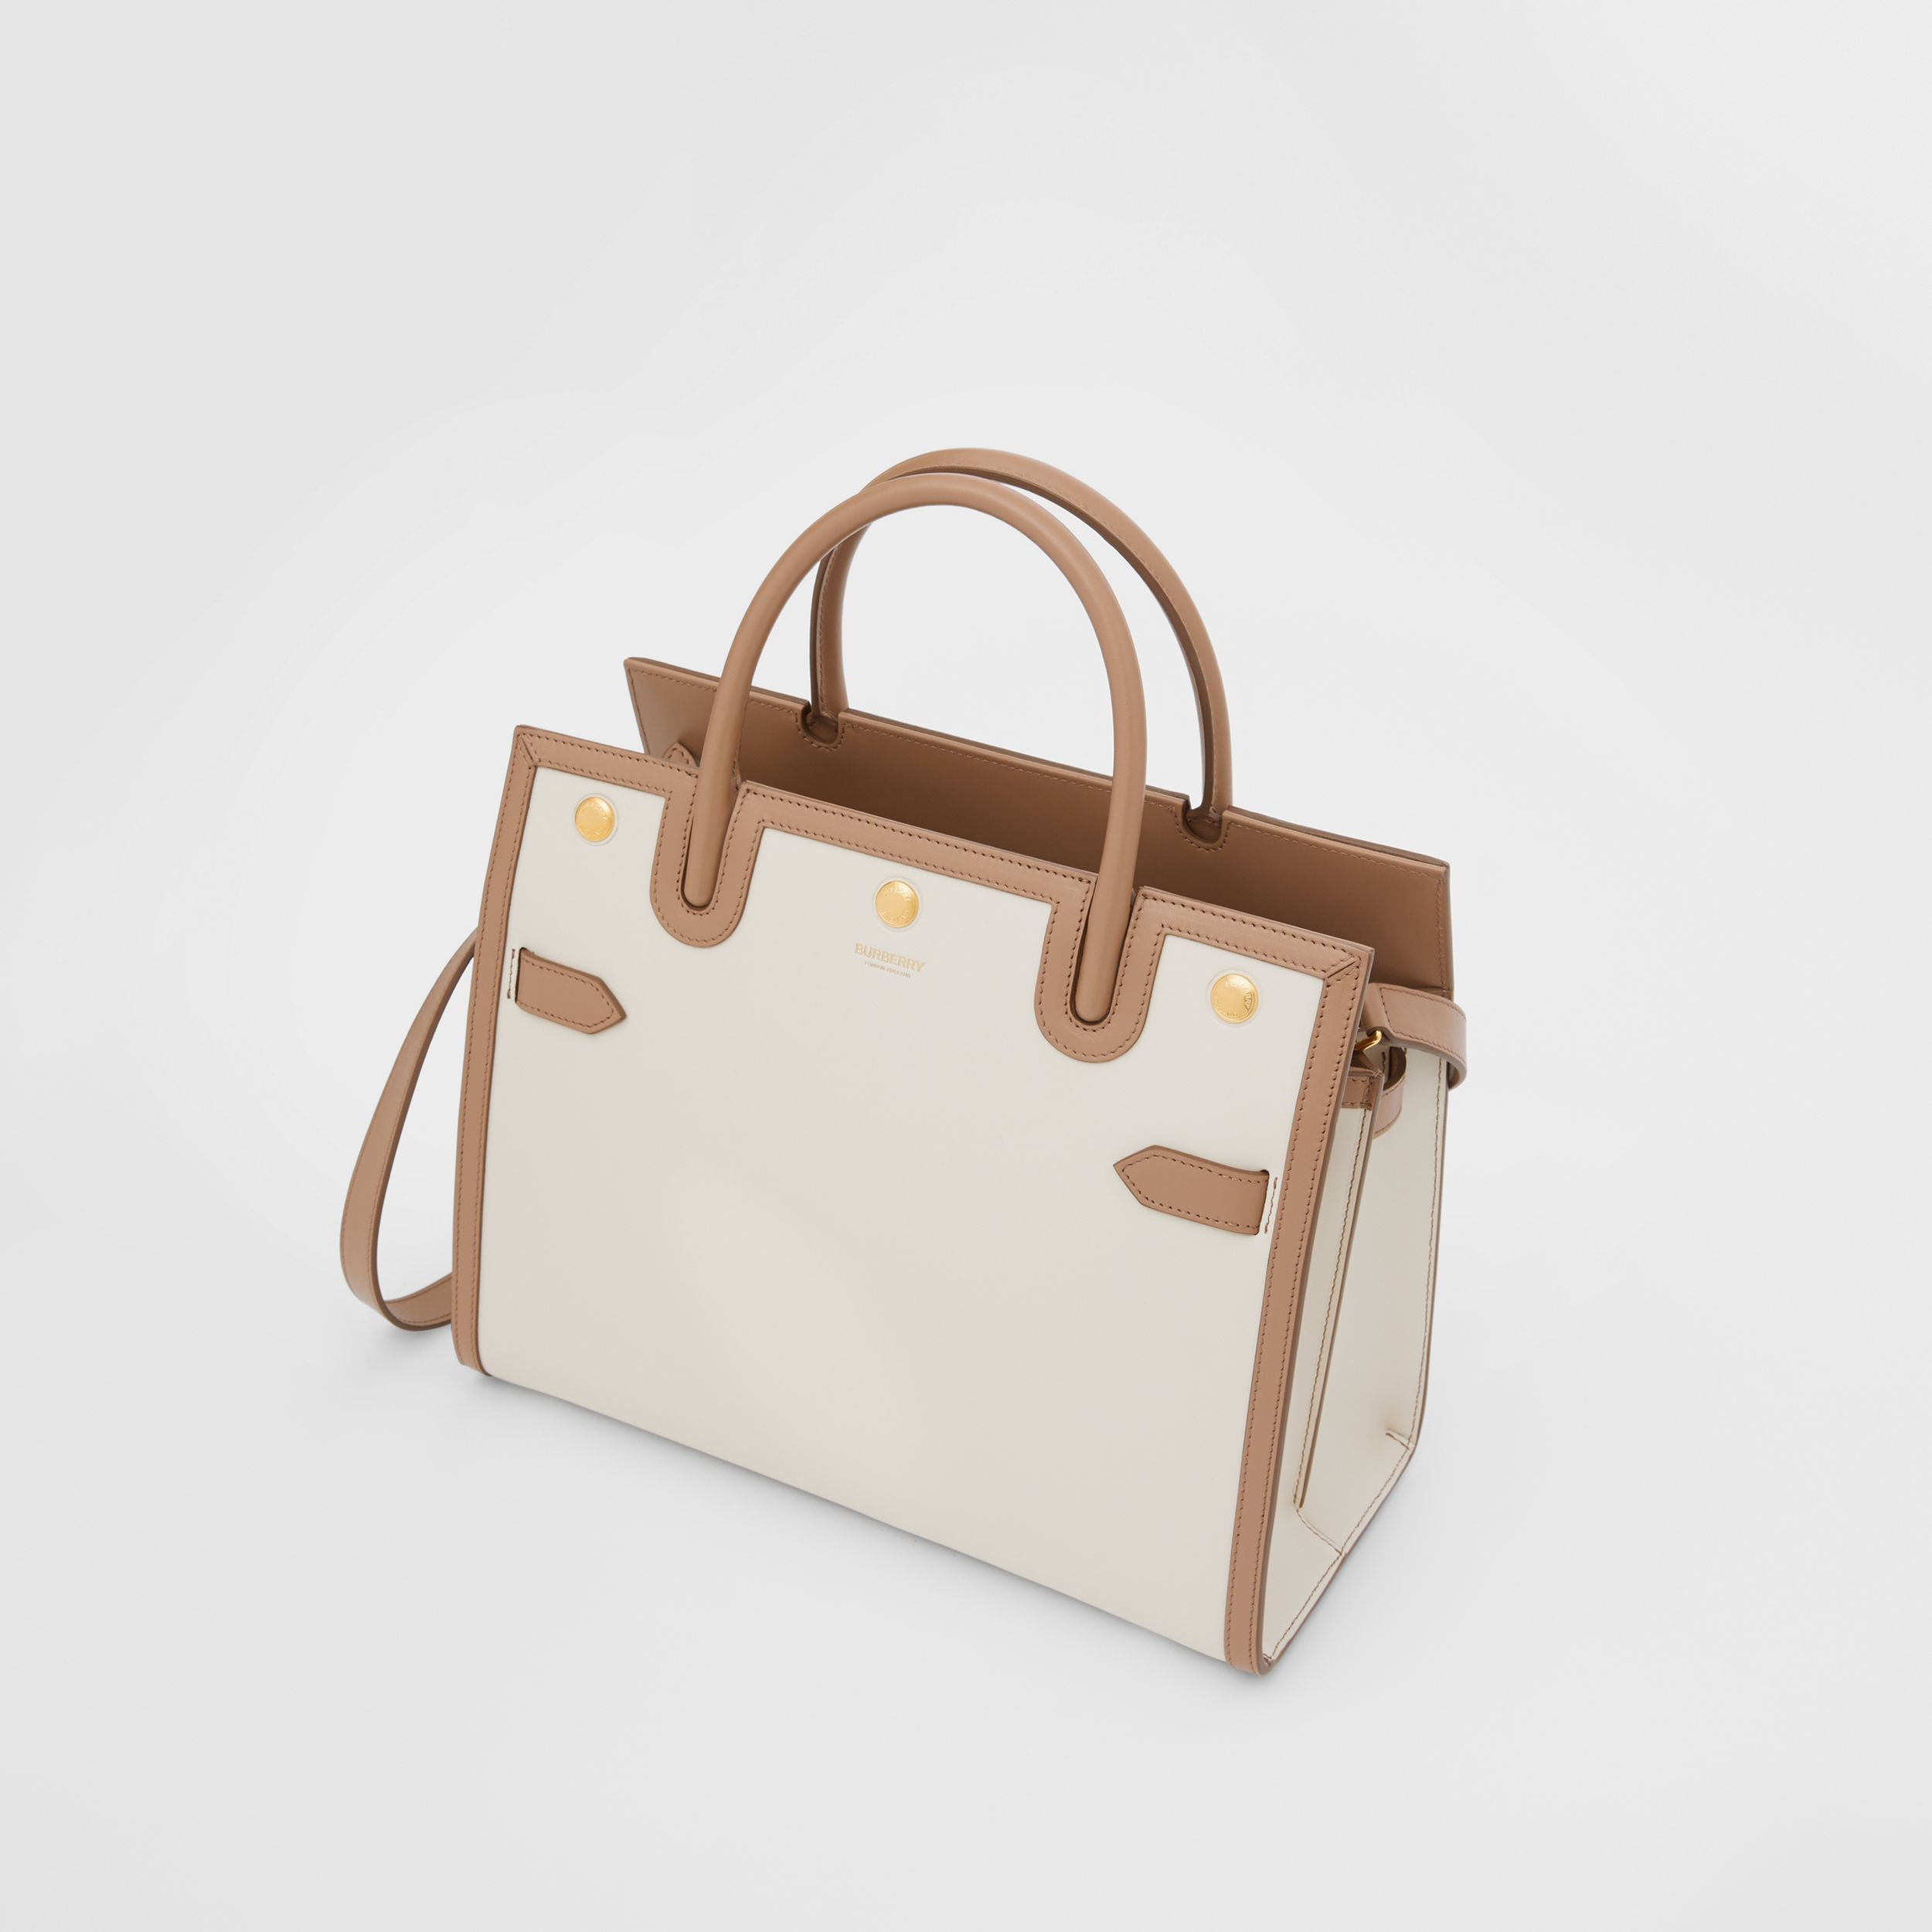 Small Leather Two-handle Title Bag in Buttermilk/camel - Women | Burberry - 4